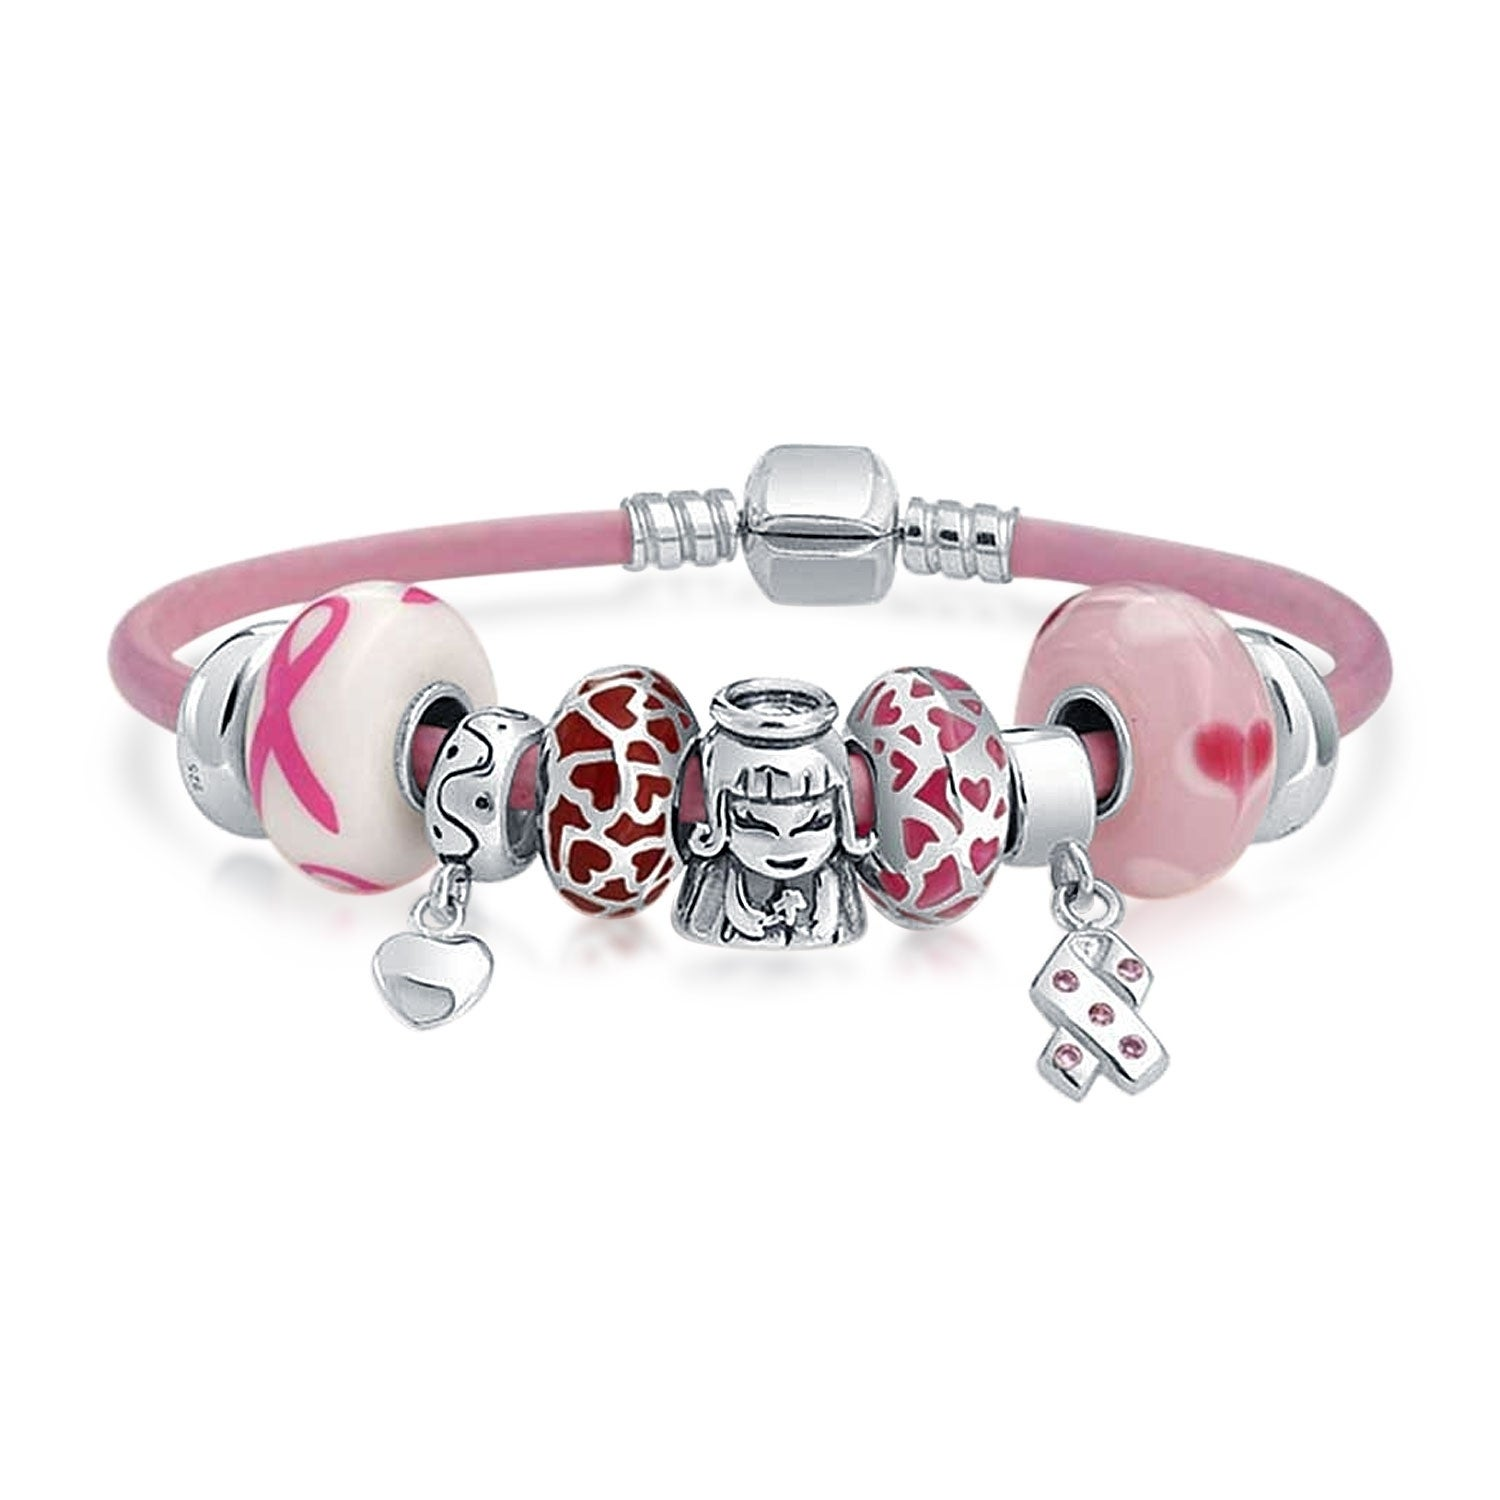 96a61bbb7 Shop Breast Cancer Survivor Pink Family European Bead Charms Bracelet  Genuine Leather For Women Sterling Silver Barrel Clasp - On Sale - Free  Shipping Today ...